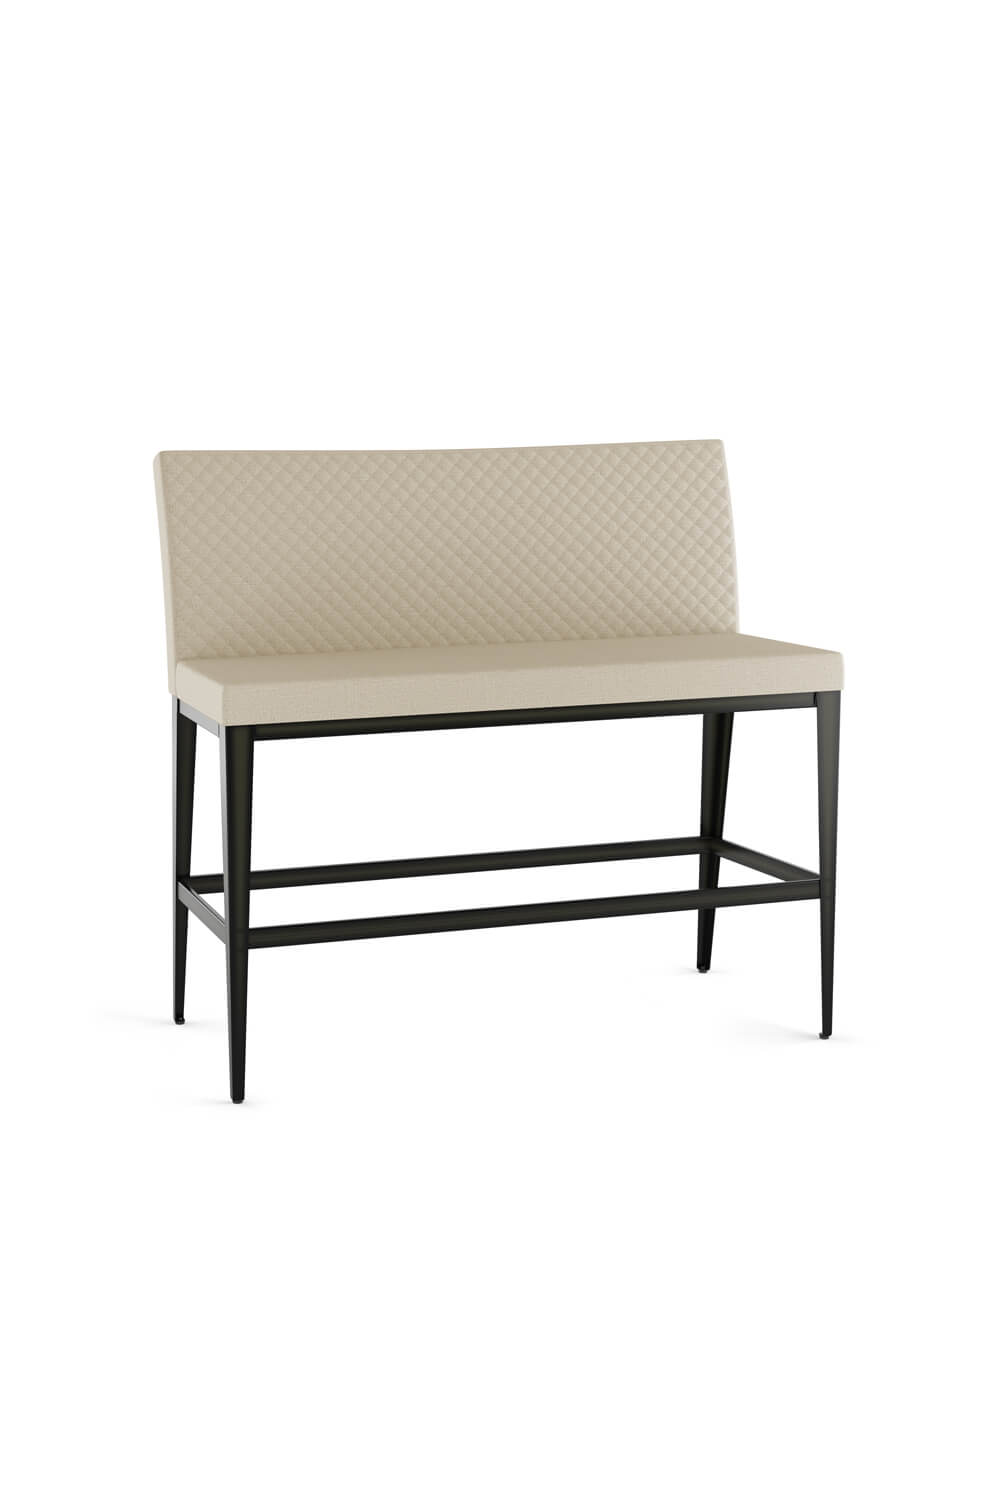 Picture of: Amisco S Pablo Quilted Upholstered Bar Stool Bench Barstool Comforts